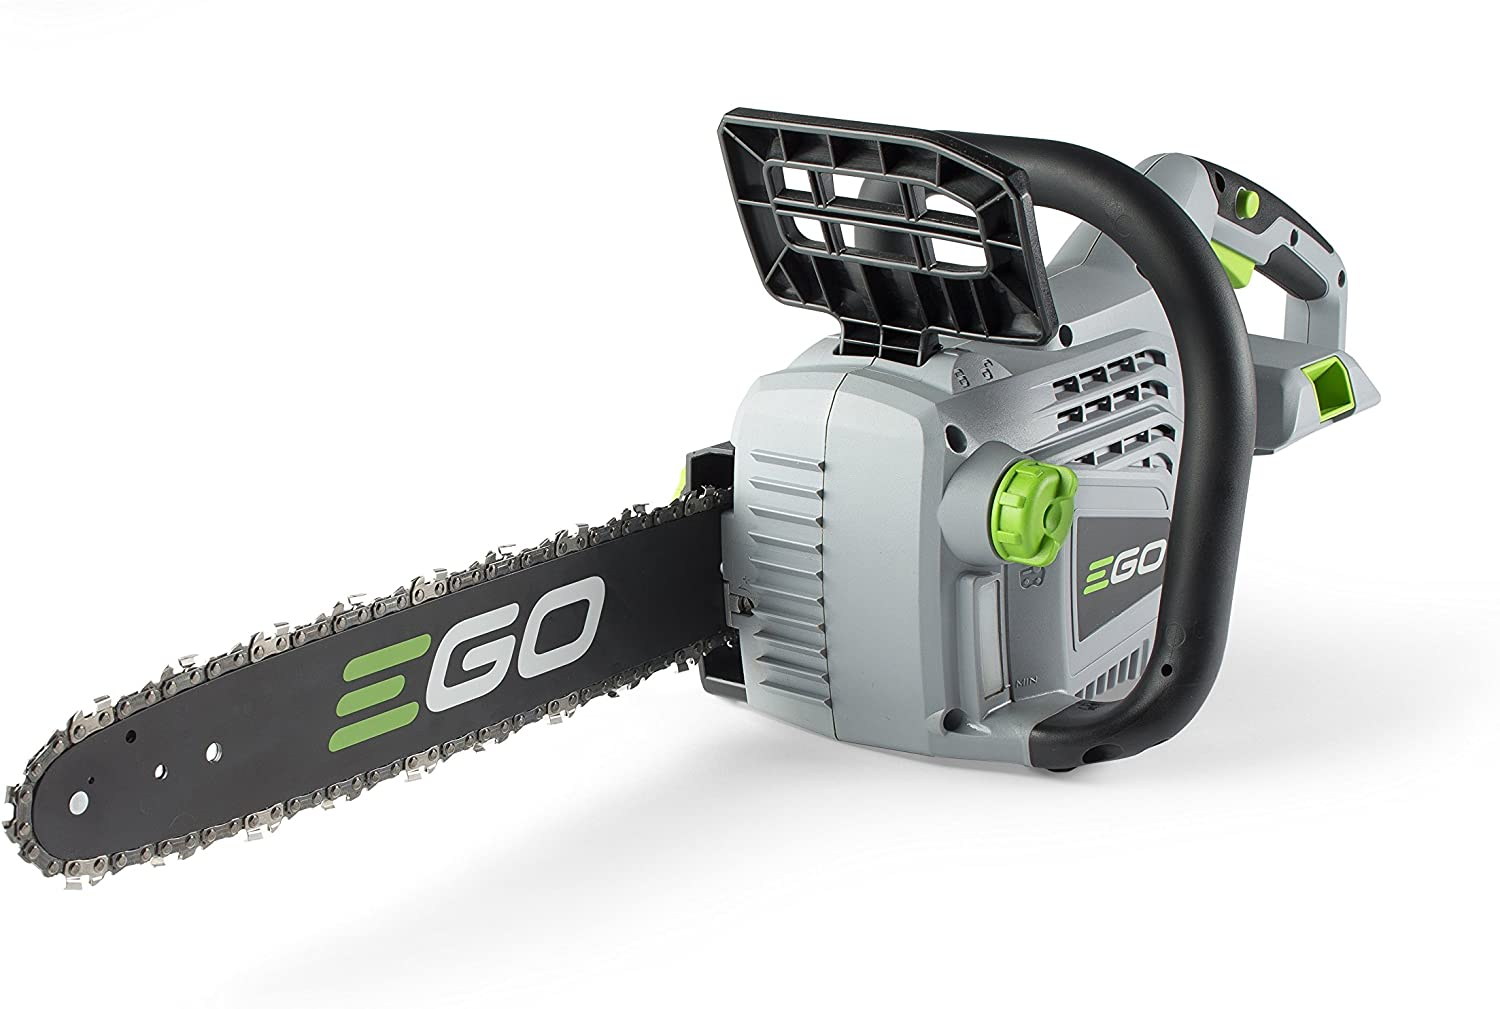 EGO Power+ CS1400 chainsaw